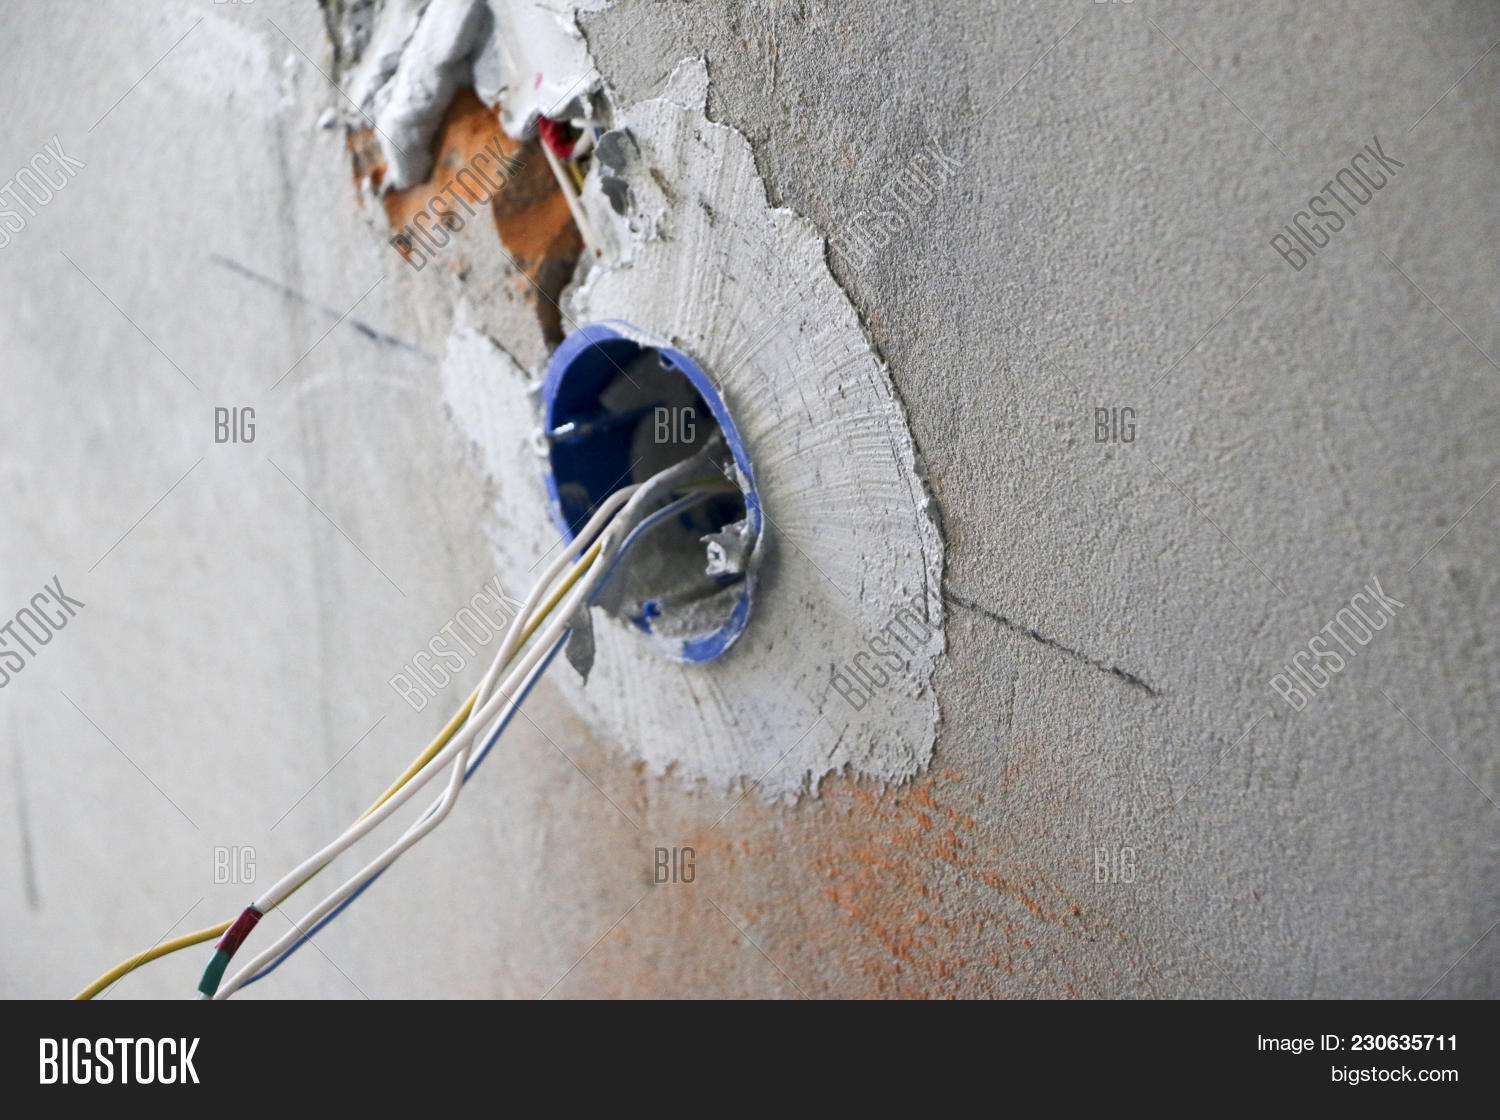 hight resolution of wall socket installation work on installing electrical outlets electrician prepares wiring fitting outlets